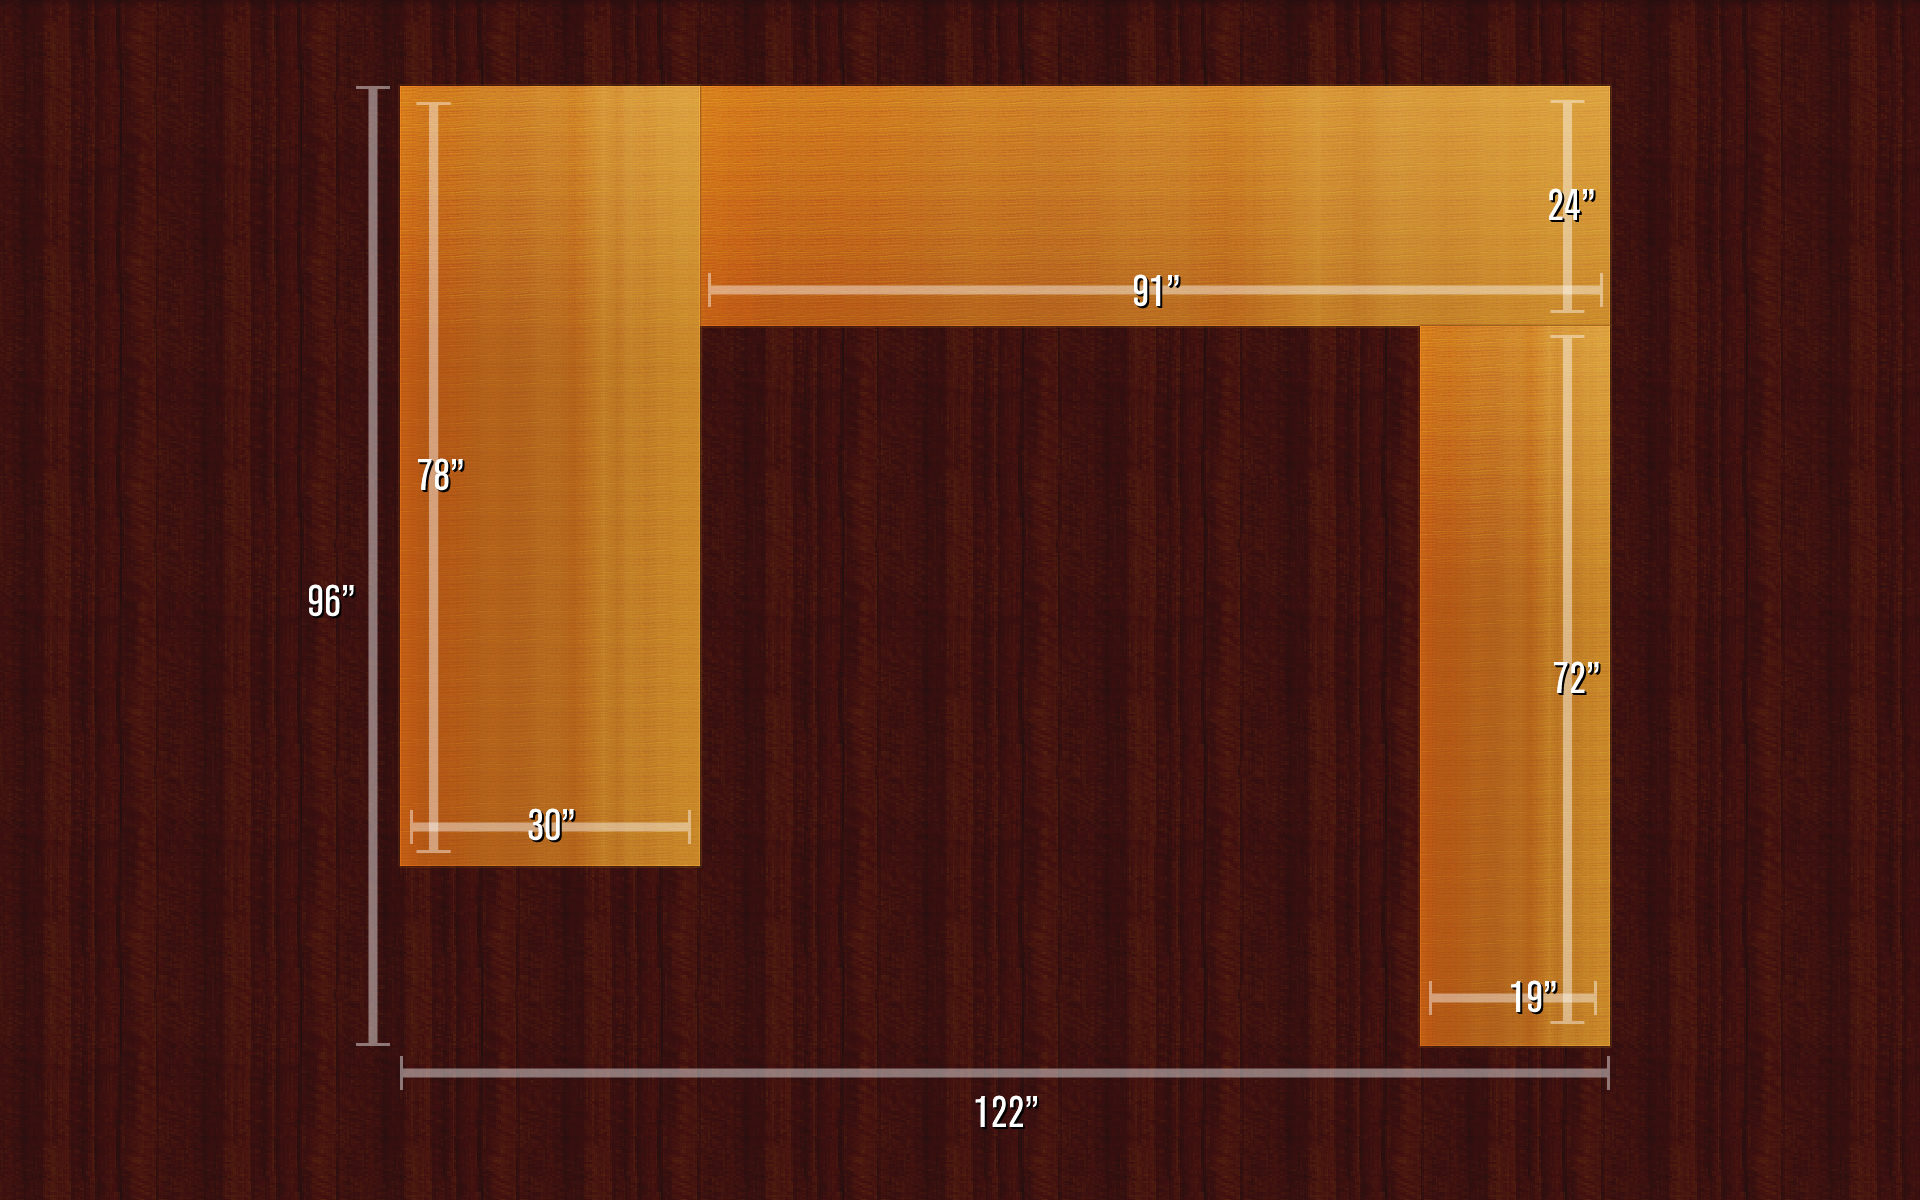 peartreeofficefurniture_peartreeofficefurniture_bernhardt-layout.jpg